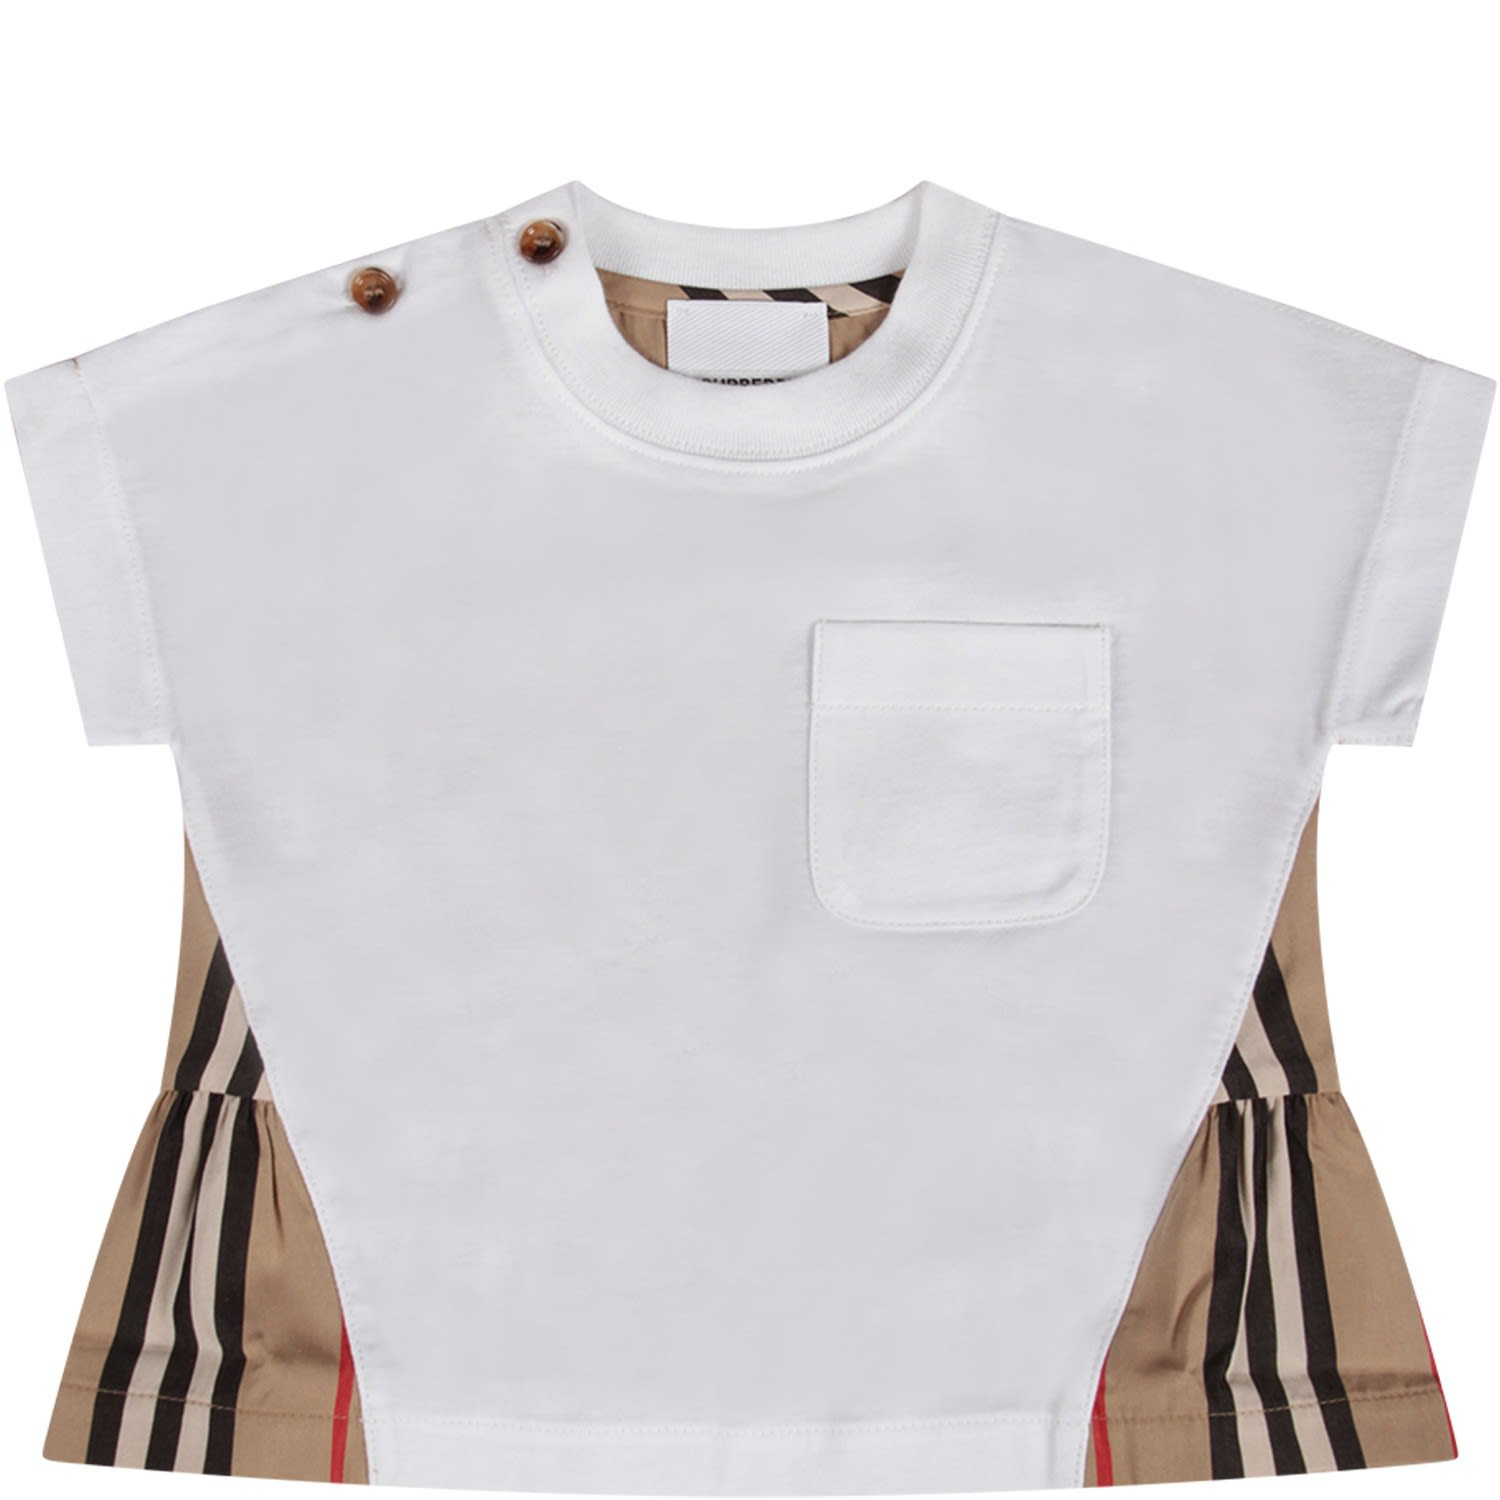 Burberry Kids' White Babygirl T-shirt With Iconic Stripes In Bianco